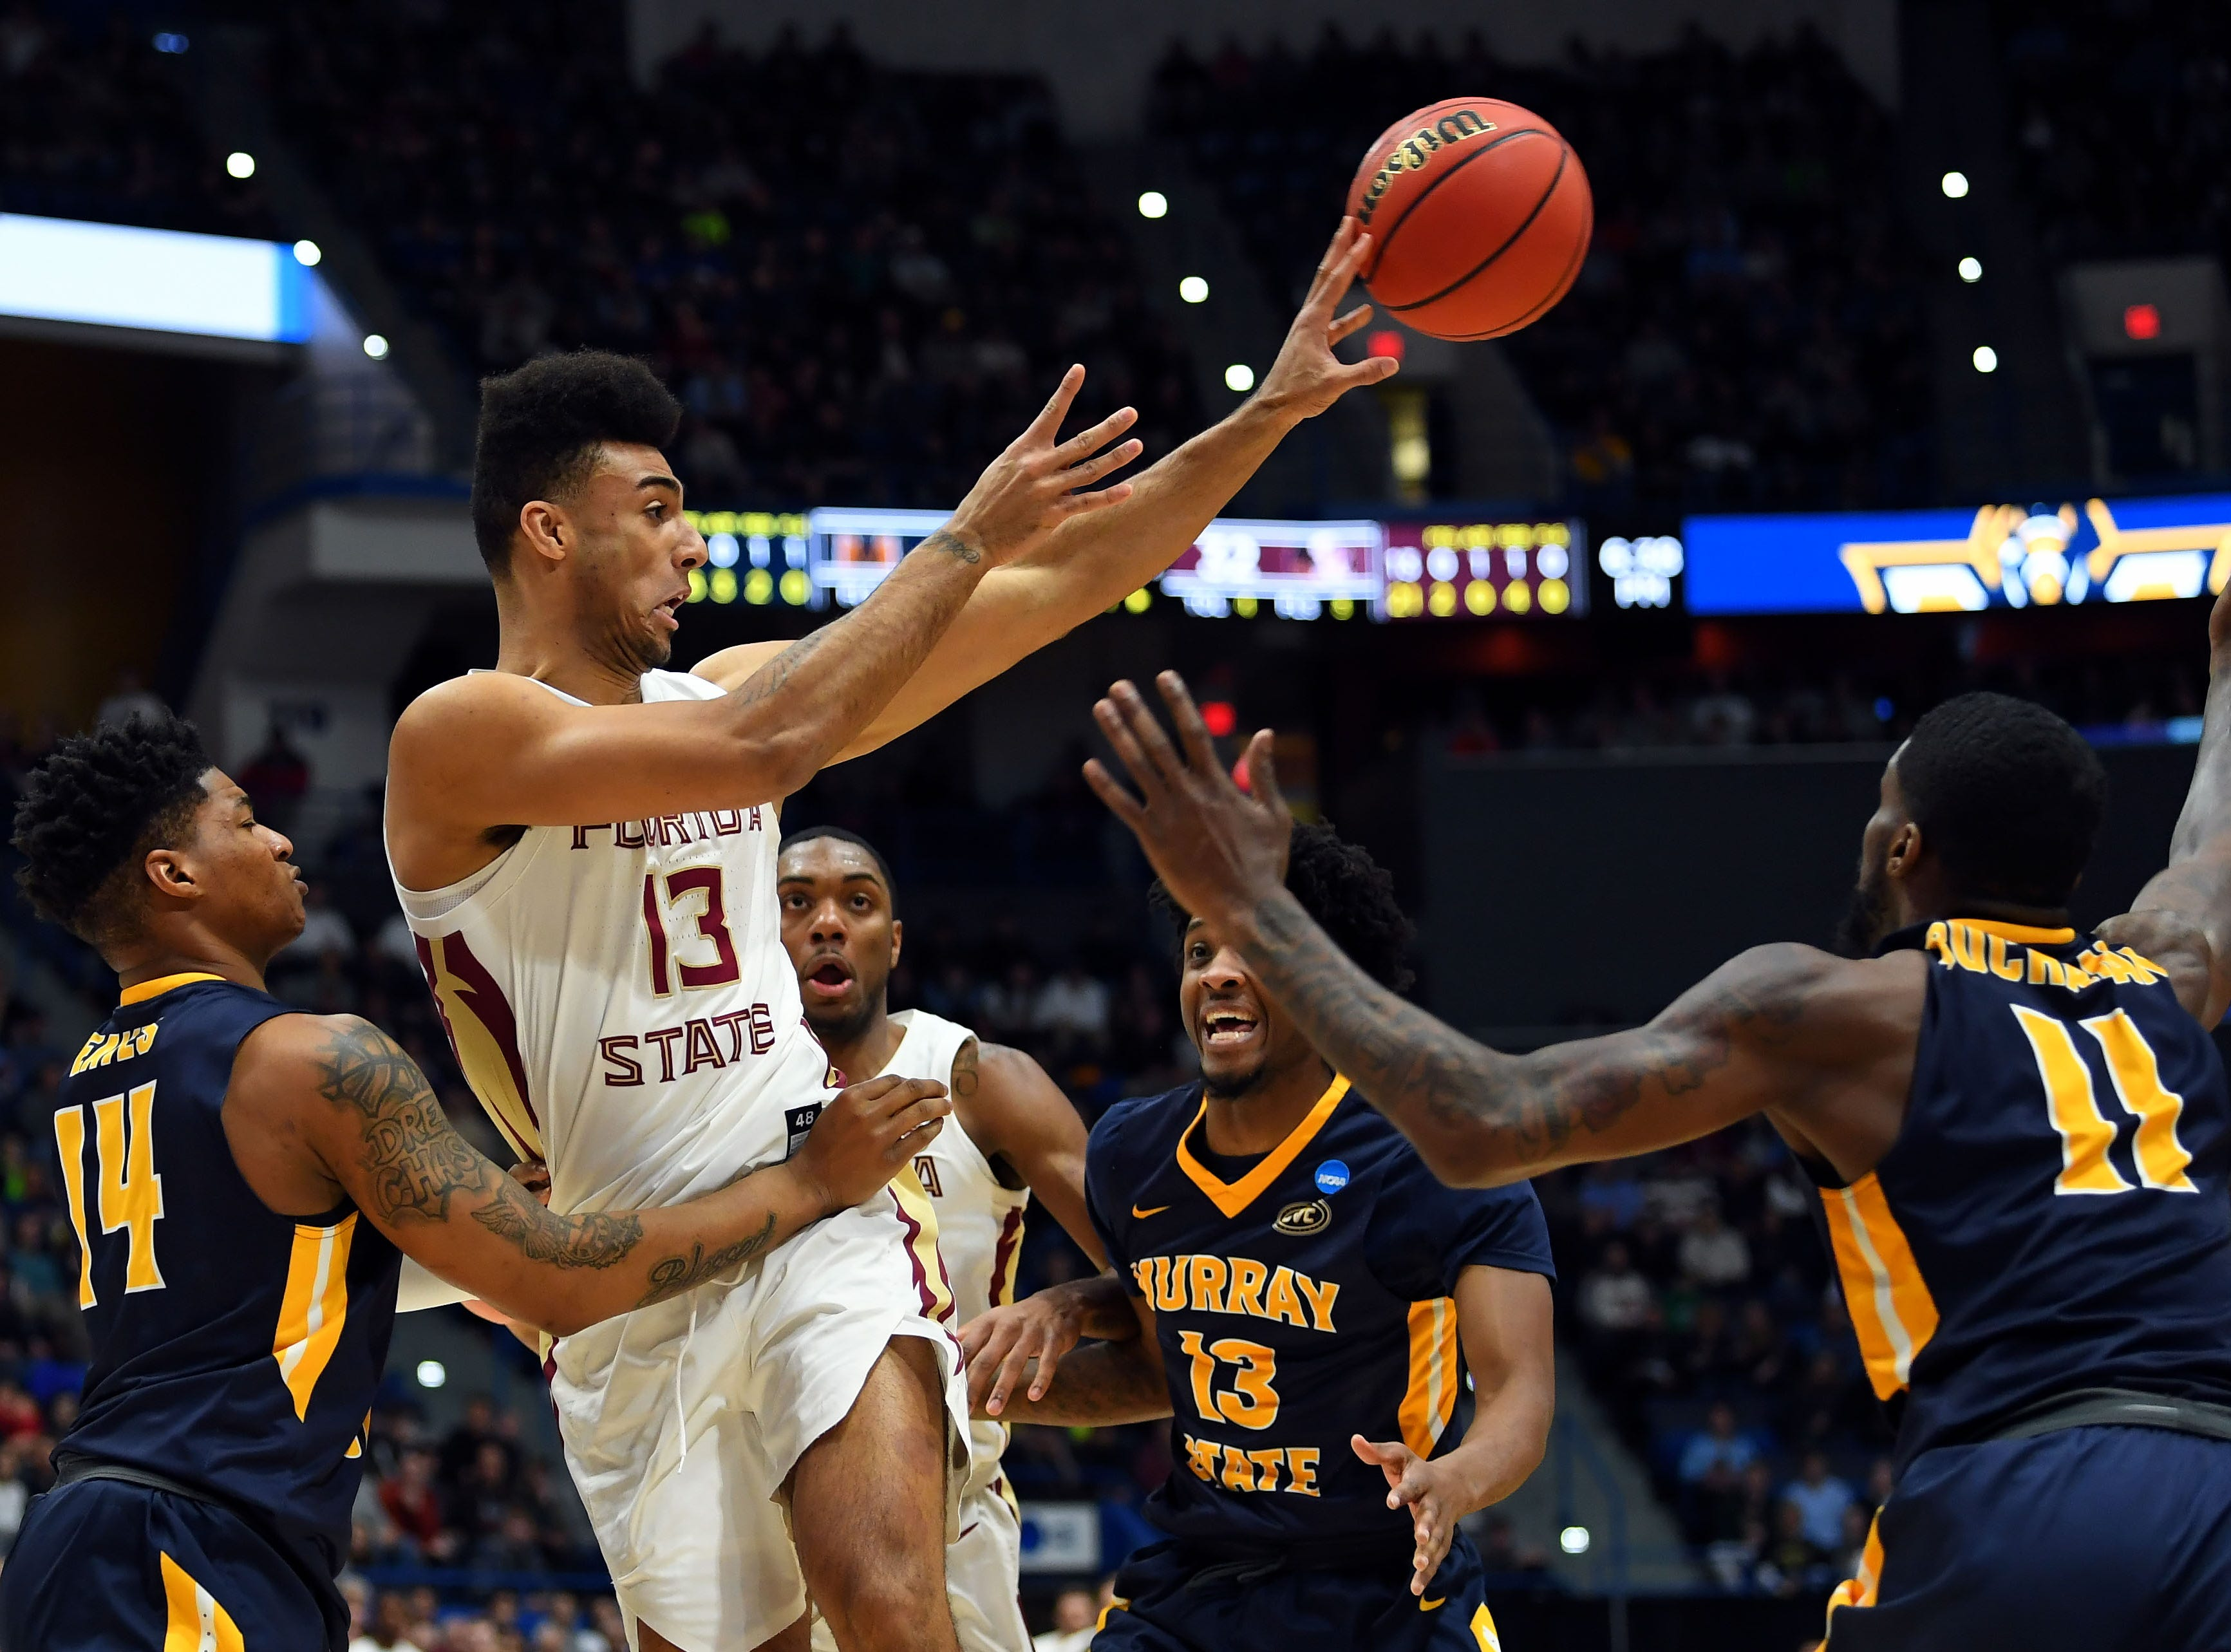 Mar 23, 2019; Hartford, CT, USA; Florida State Seminoles guard Anthony Polite (13) passes the ball against the Murray State Racers during the first half of a game in the second round of the 2019 NCAA Tournament at XL Center. Mandatory Credit: Robert Deutsch-USA TODAY Sports